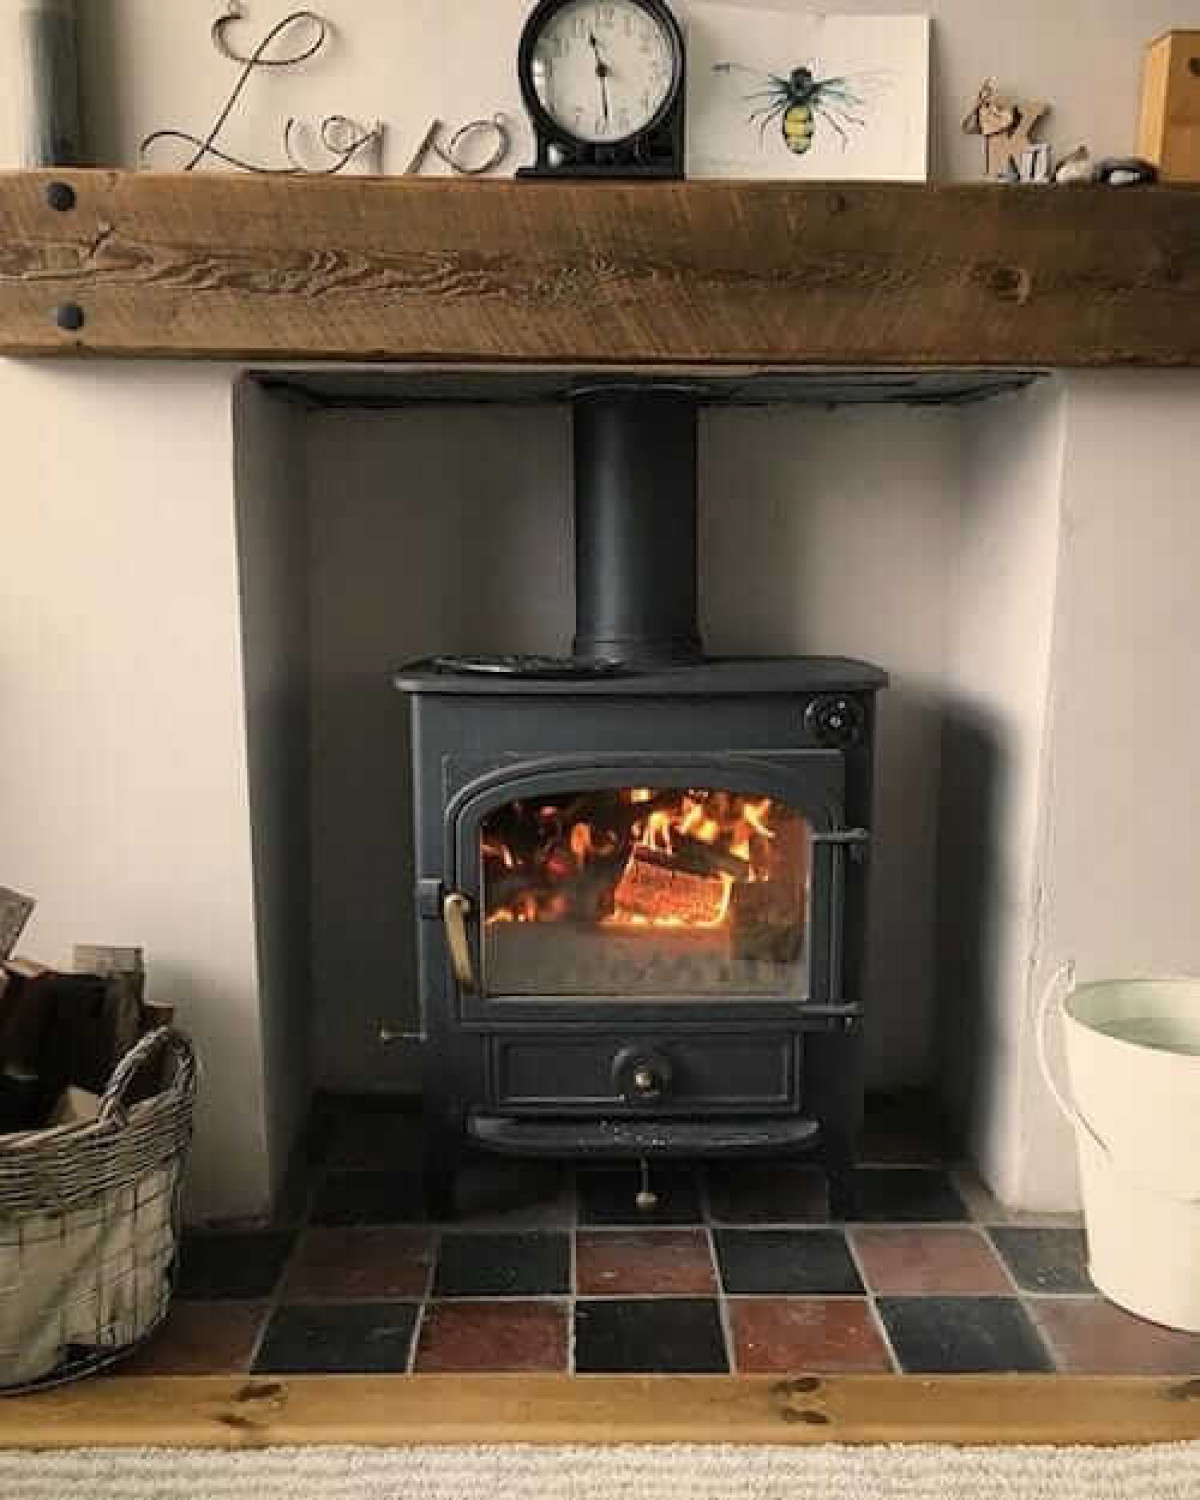 Heat Resistant Tiles: Can you use tiles around a wood burner